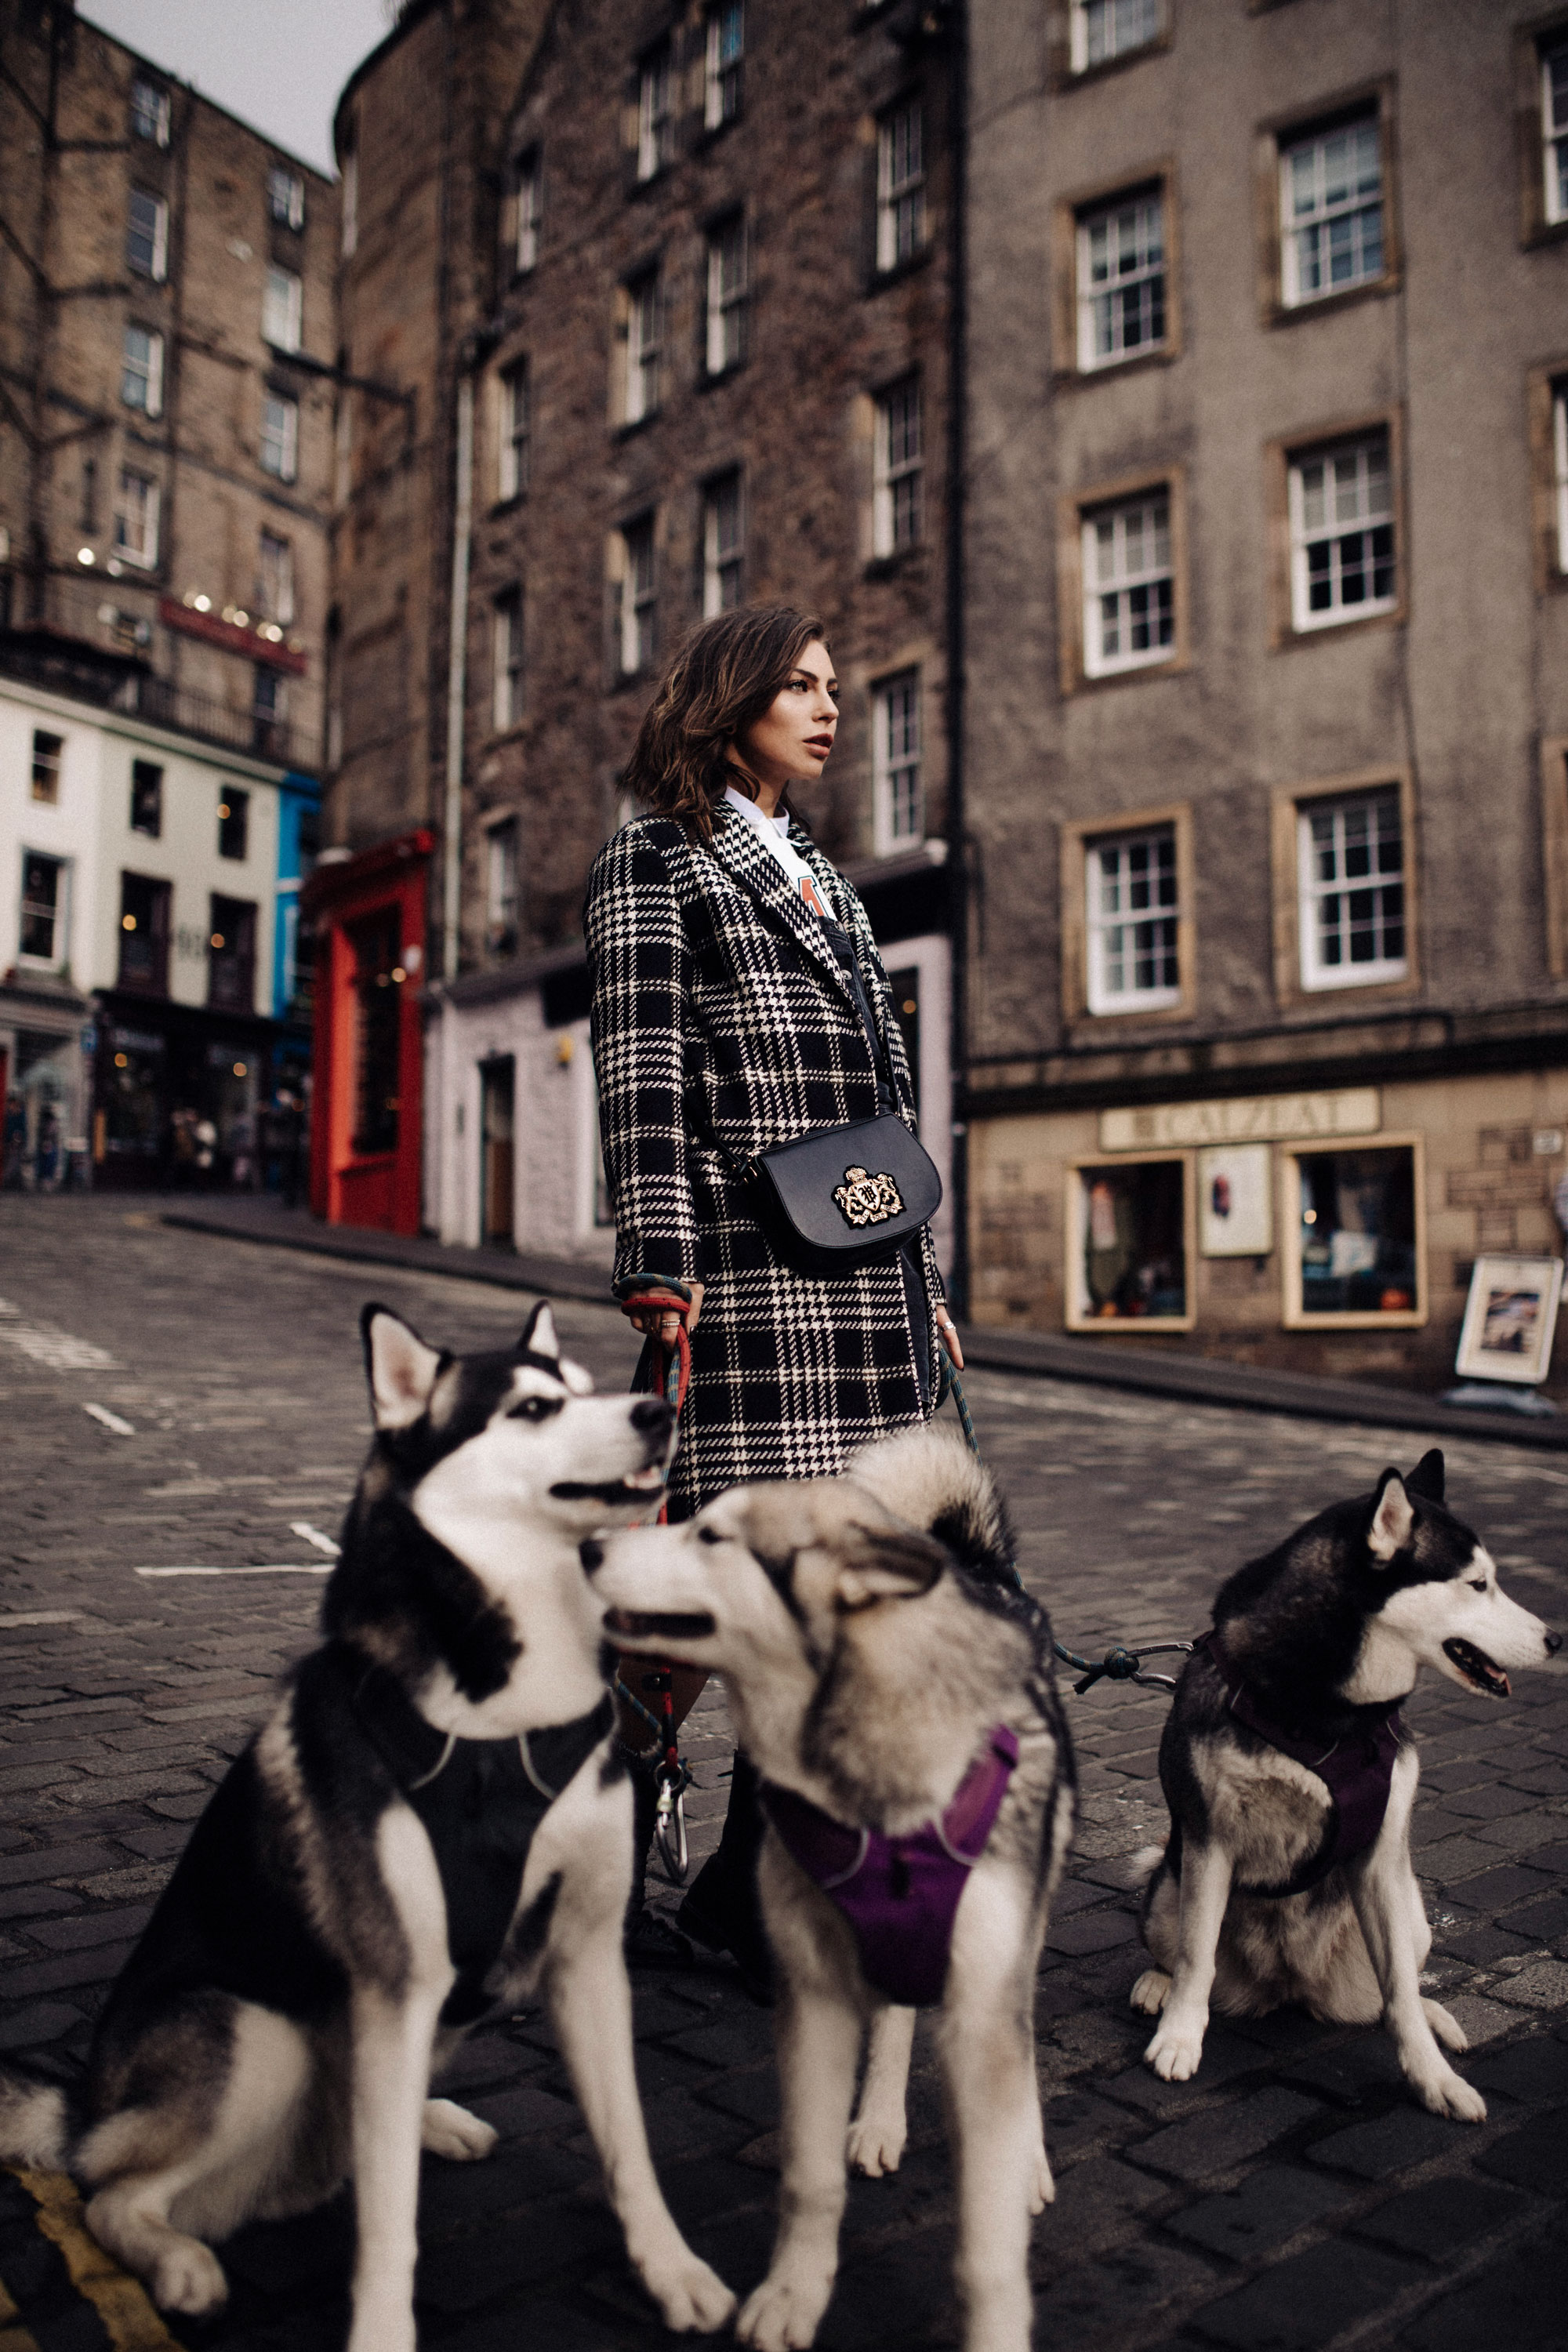 Fashion Editorial Shooting with Husky dogs | Autumn Winter | Edinburgh, Scotland | Peek & Cloppenburg | Blogger | style: college, casual, office, checked, Harry Potter | labels: Tommy Hilfiger, Polo Ralph Lauren, Levi's, Jake's, Hugo, Max&co